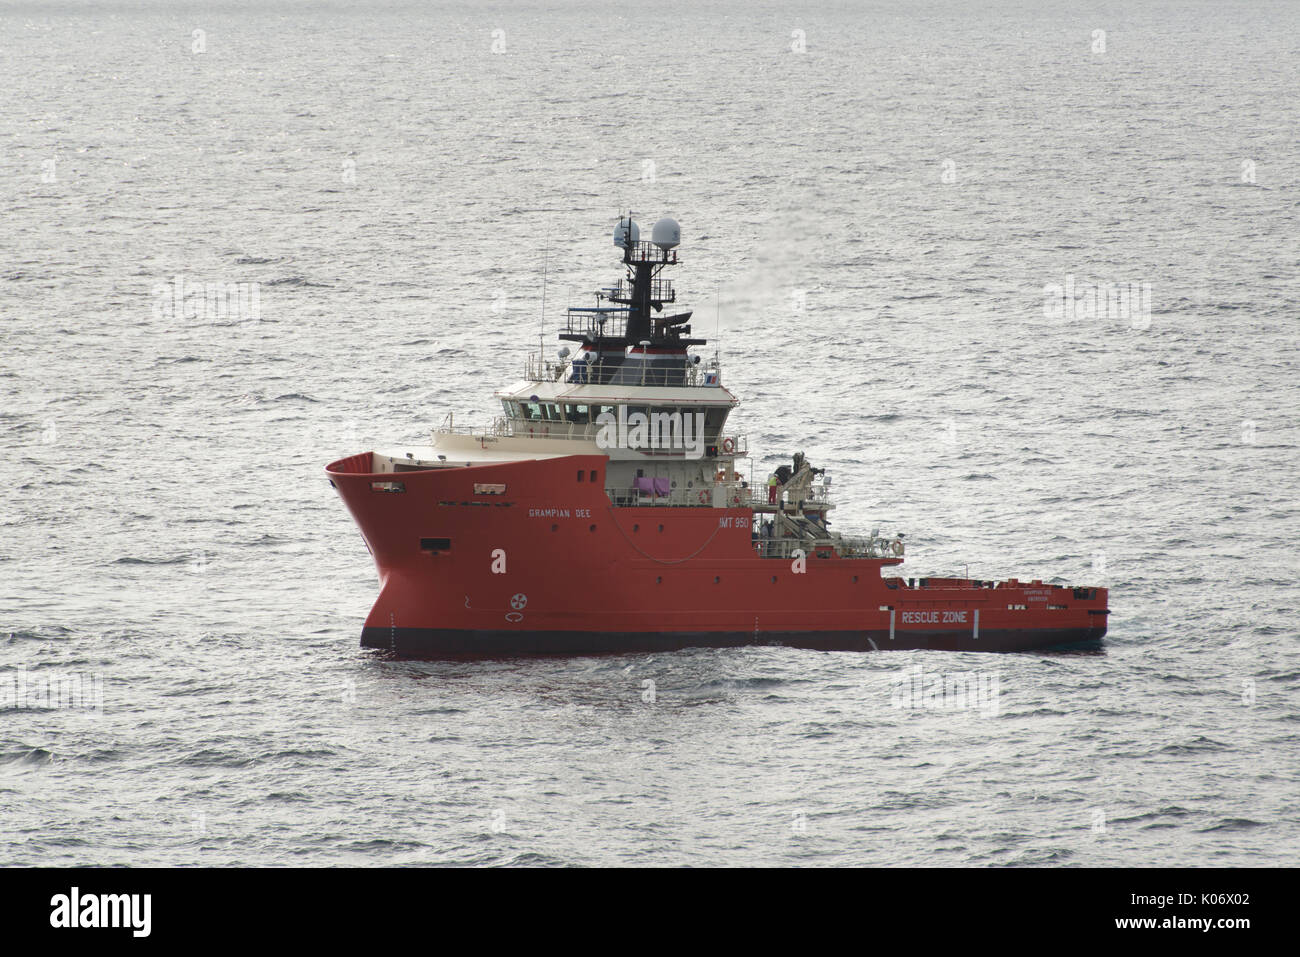 The Grampian Dee North Sea oil and gas standby safety EERV Vessel. credit: LEE RAMSDEN / ALAMY - Stock Image